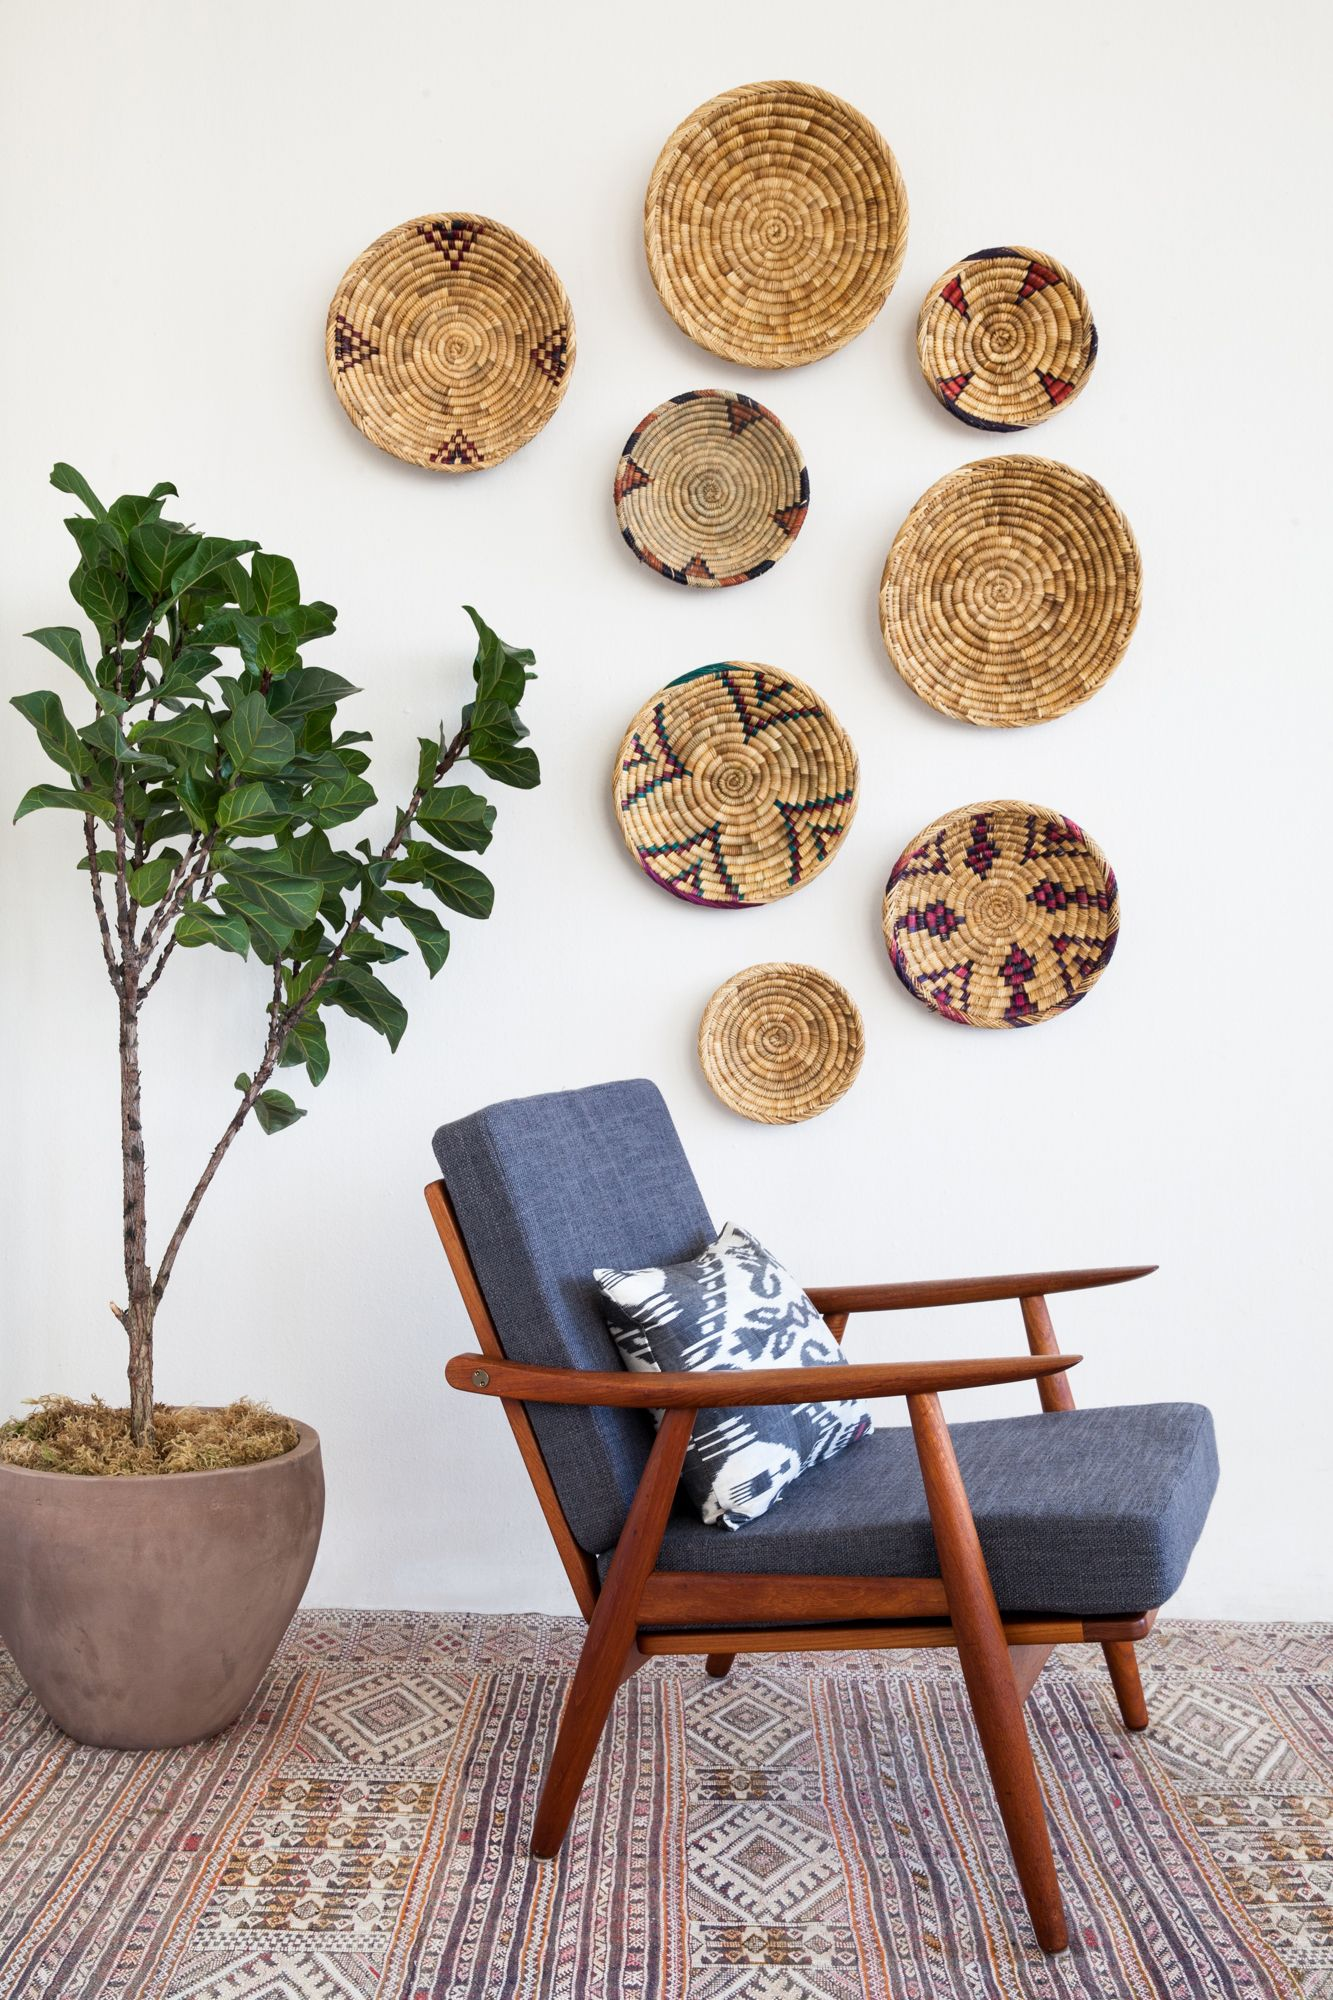 Marrakech kilims and baskets dwell pinterest kilims baskets mounted on the wall mid century modern chair and fig tree amipublicfo Choice Image